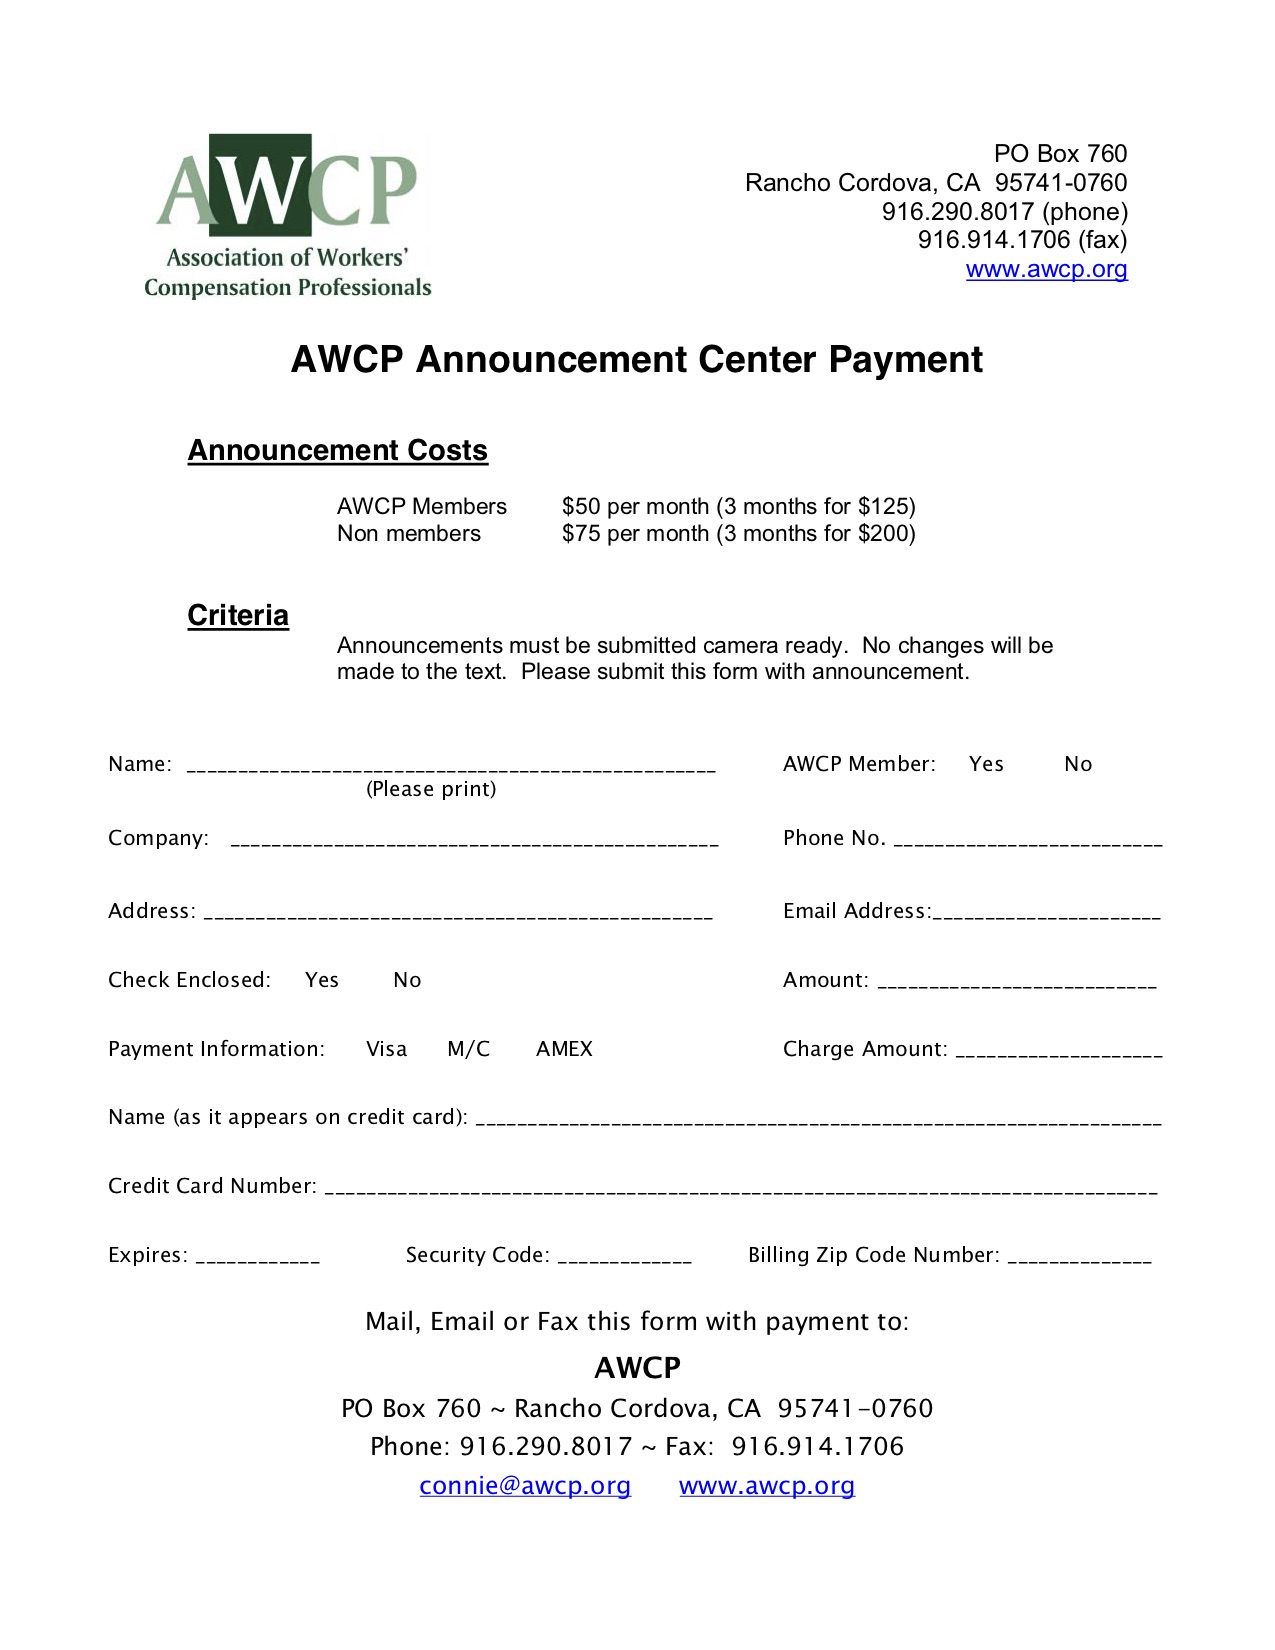 AWCP Announcement Center - Insertion and Payment